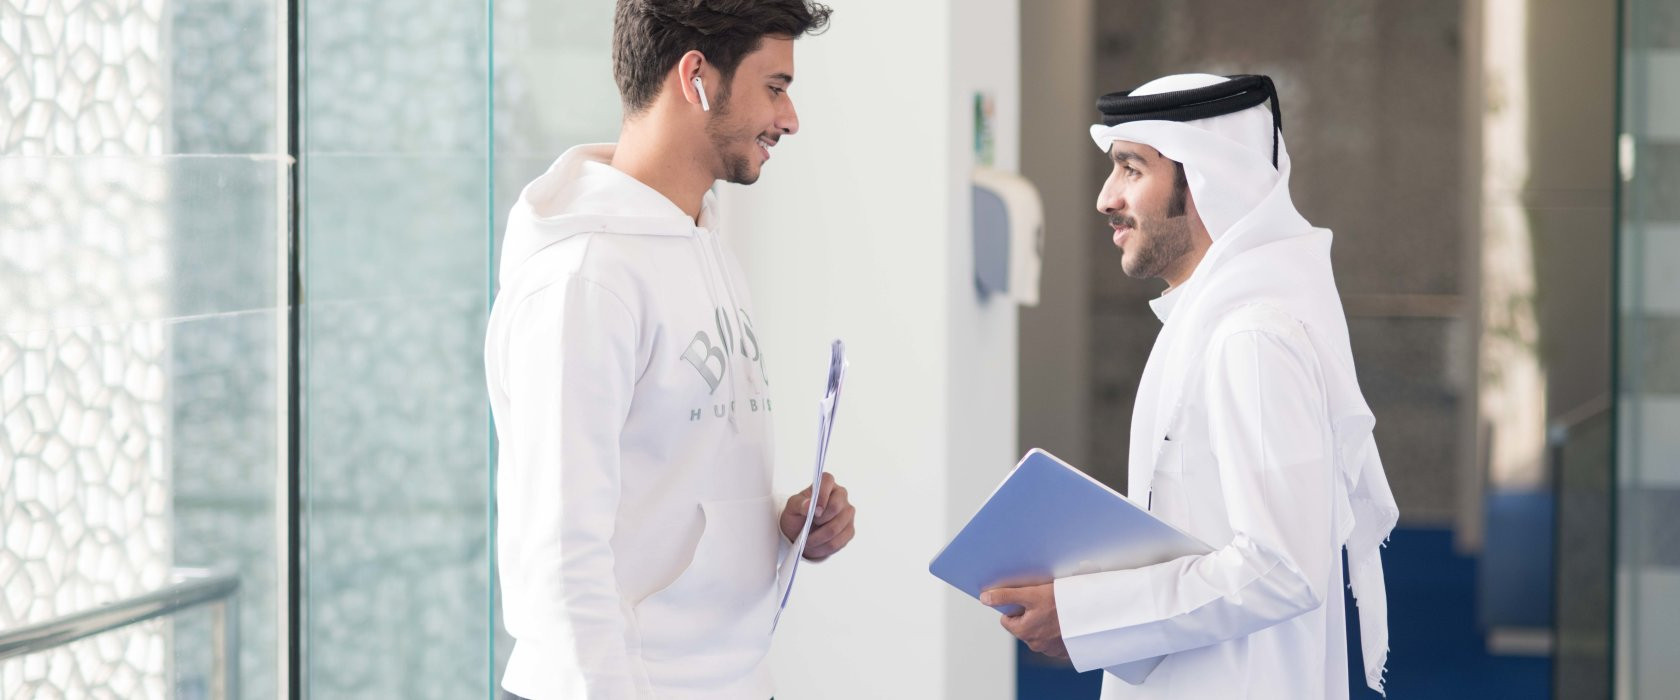 Student Research: Analyzing the study abroad program experiences of QF's students